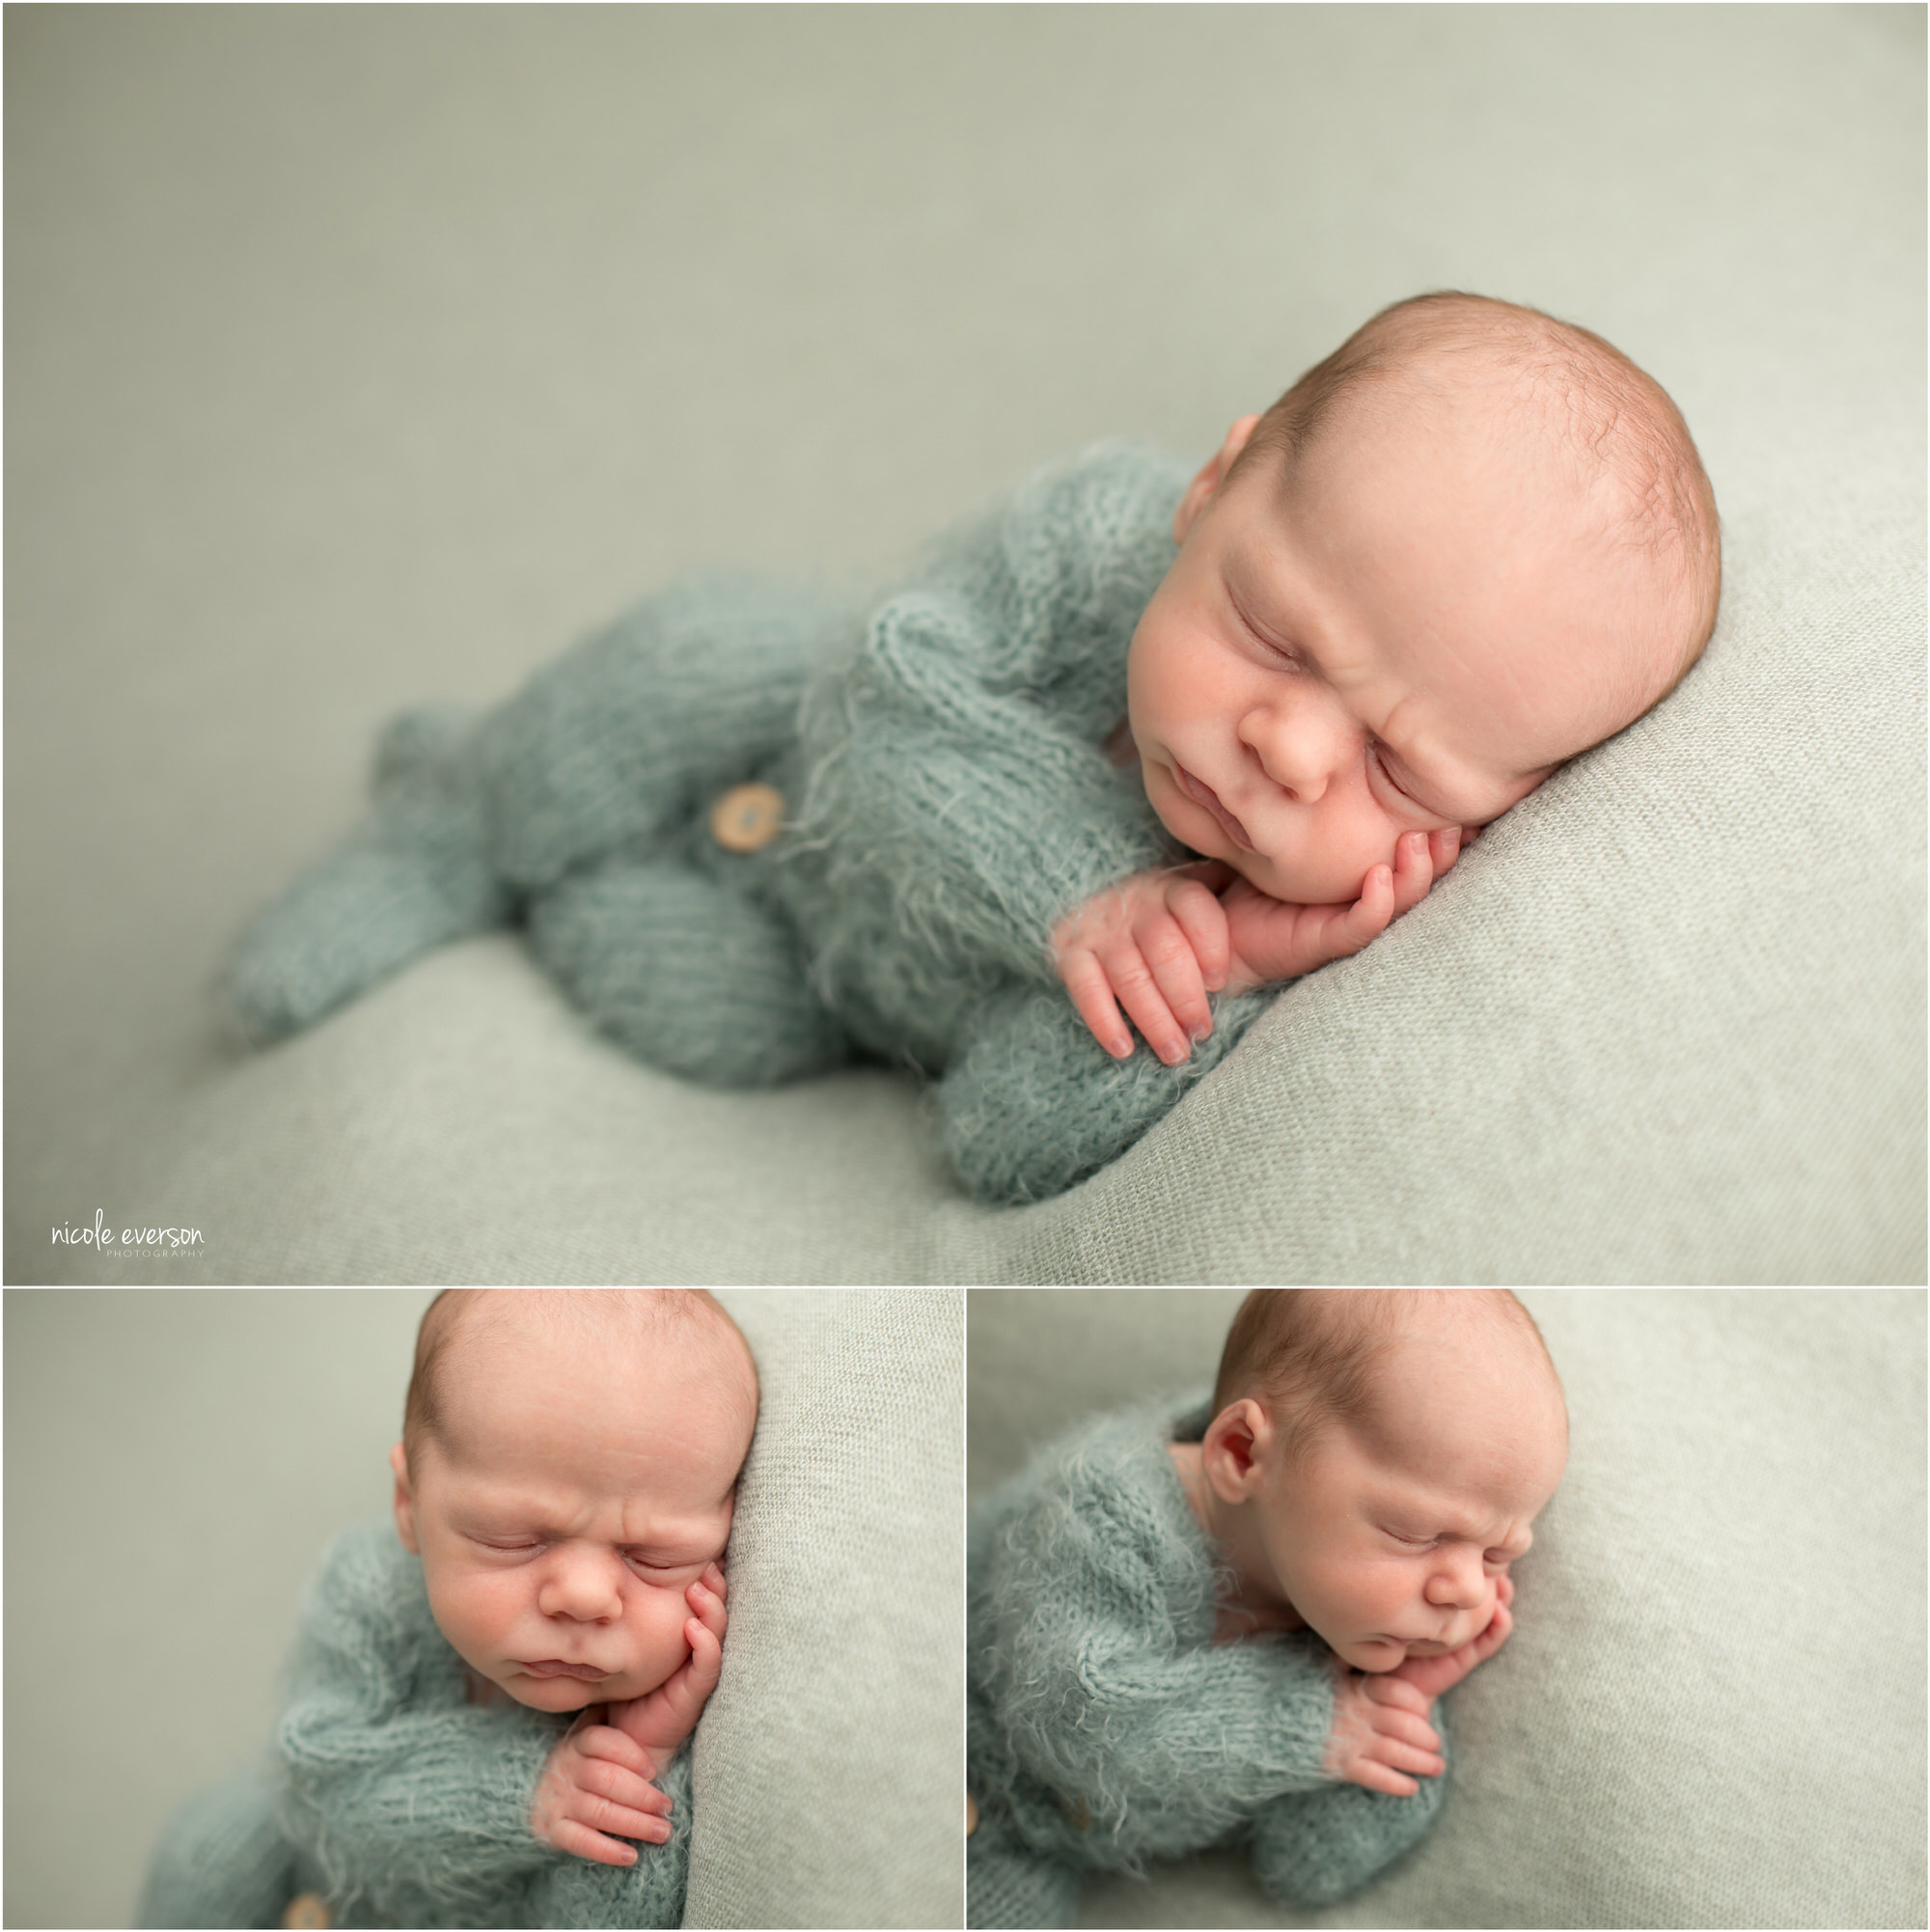 Newborn baby boy in a fuzzy blue outfit photographed at Nicole Everson Photography.